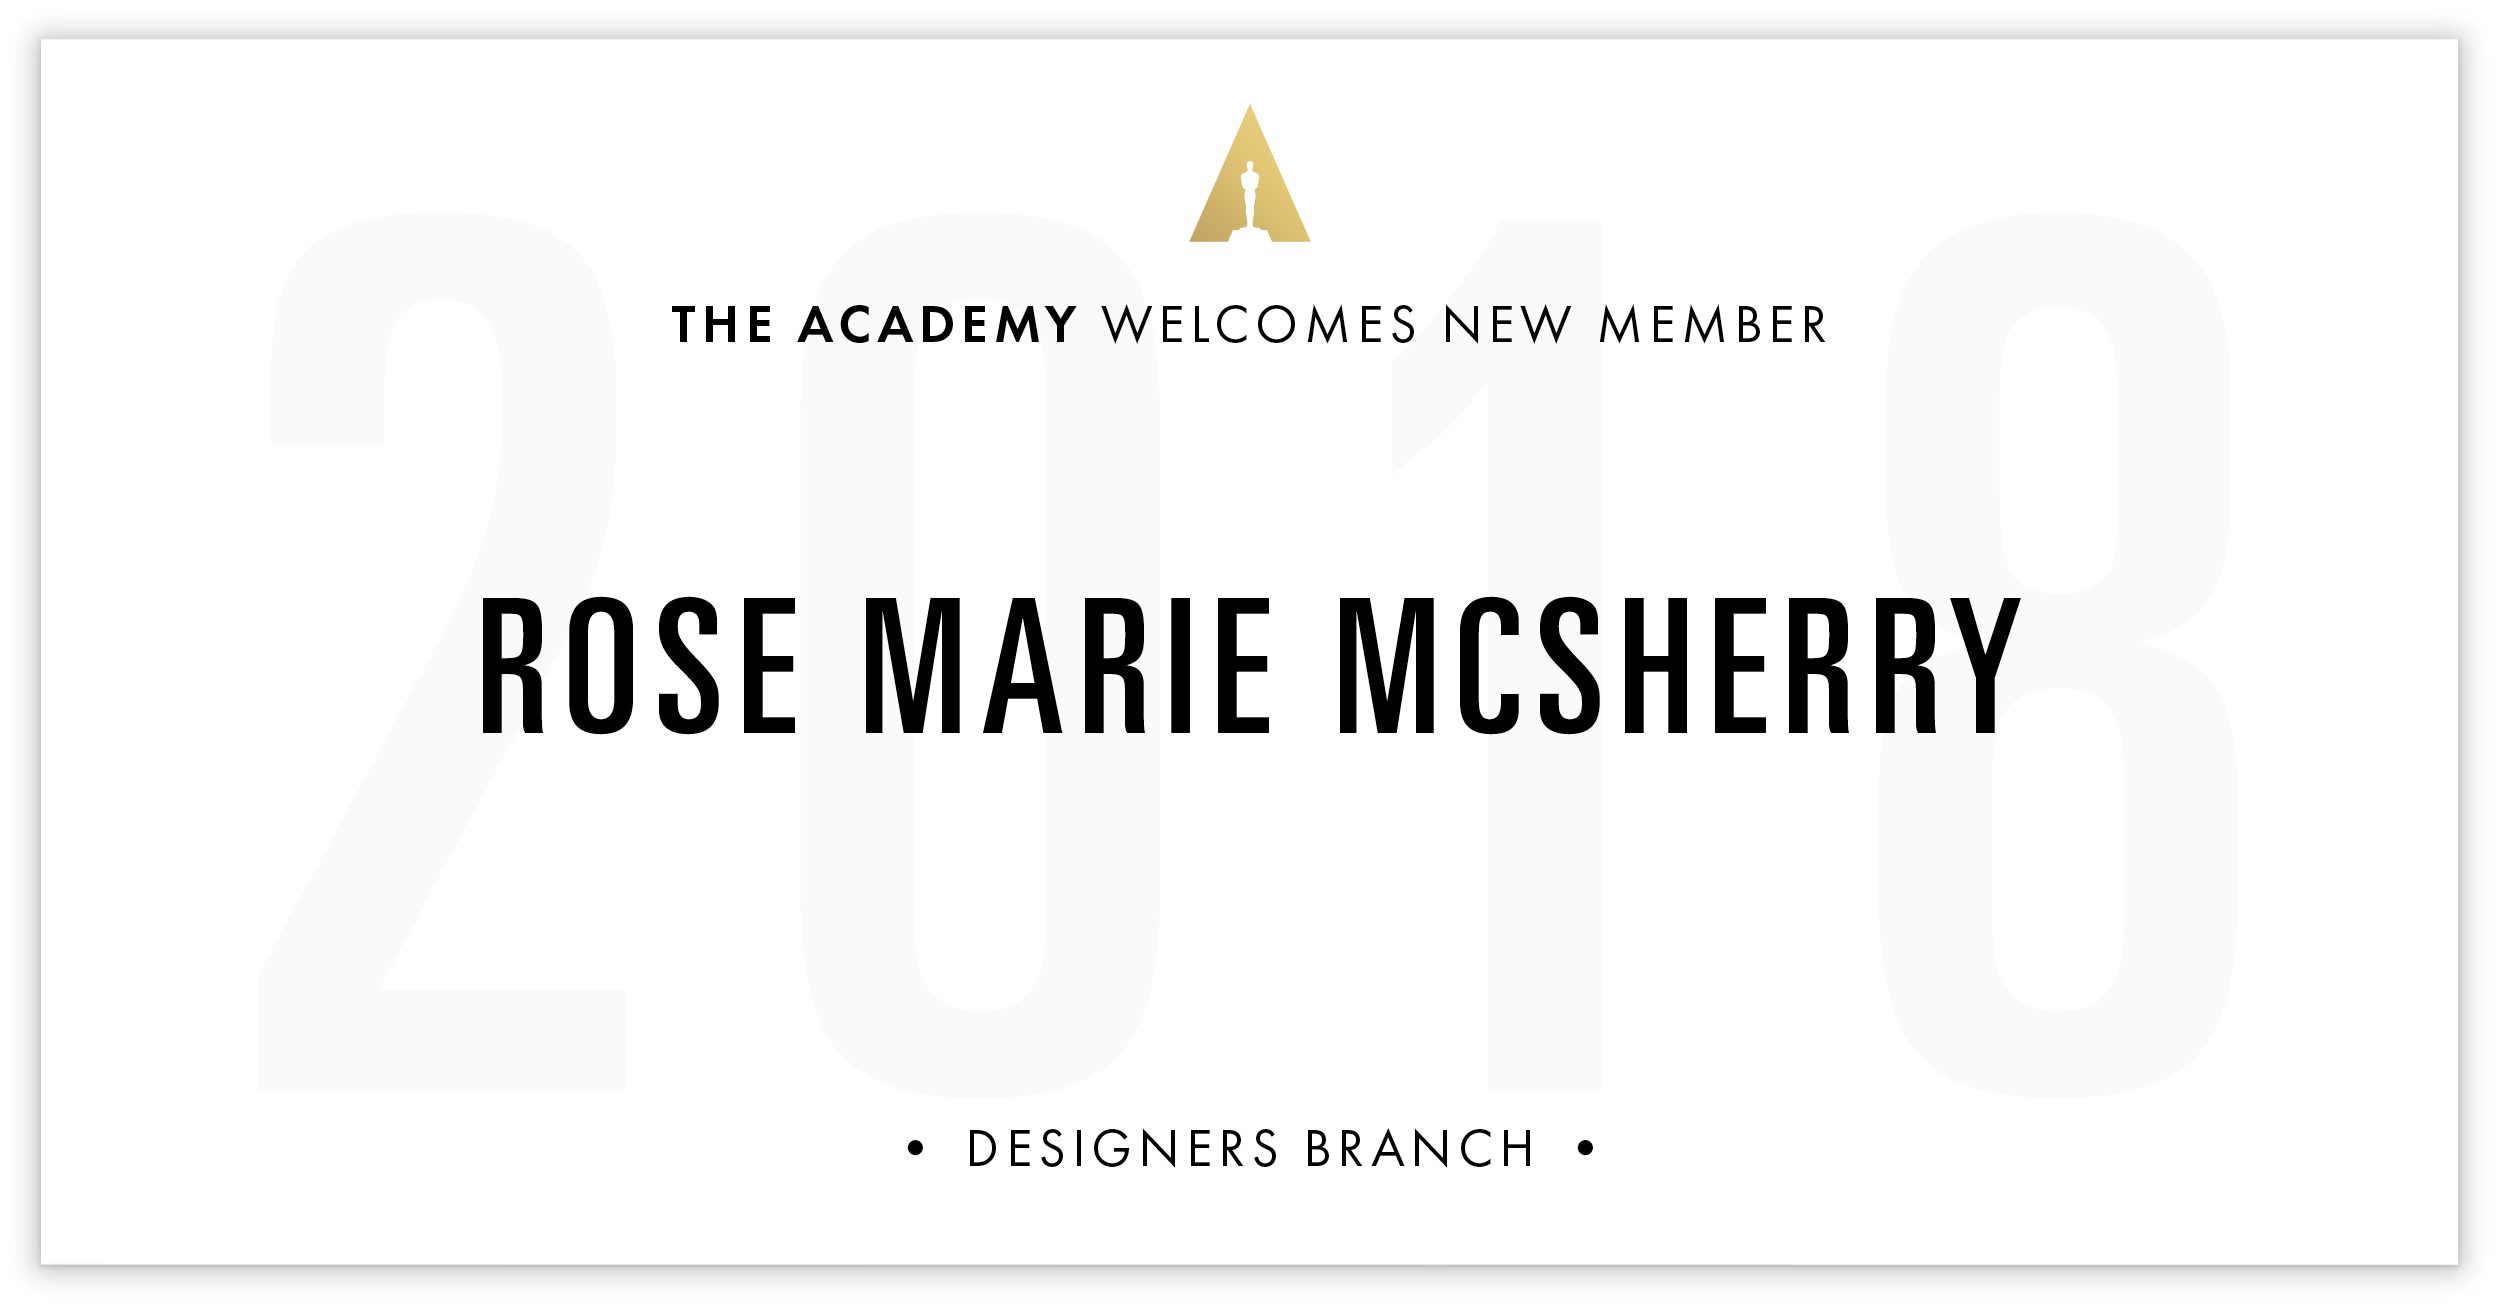 Rose Marie McSherry is invited!